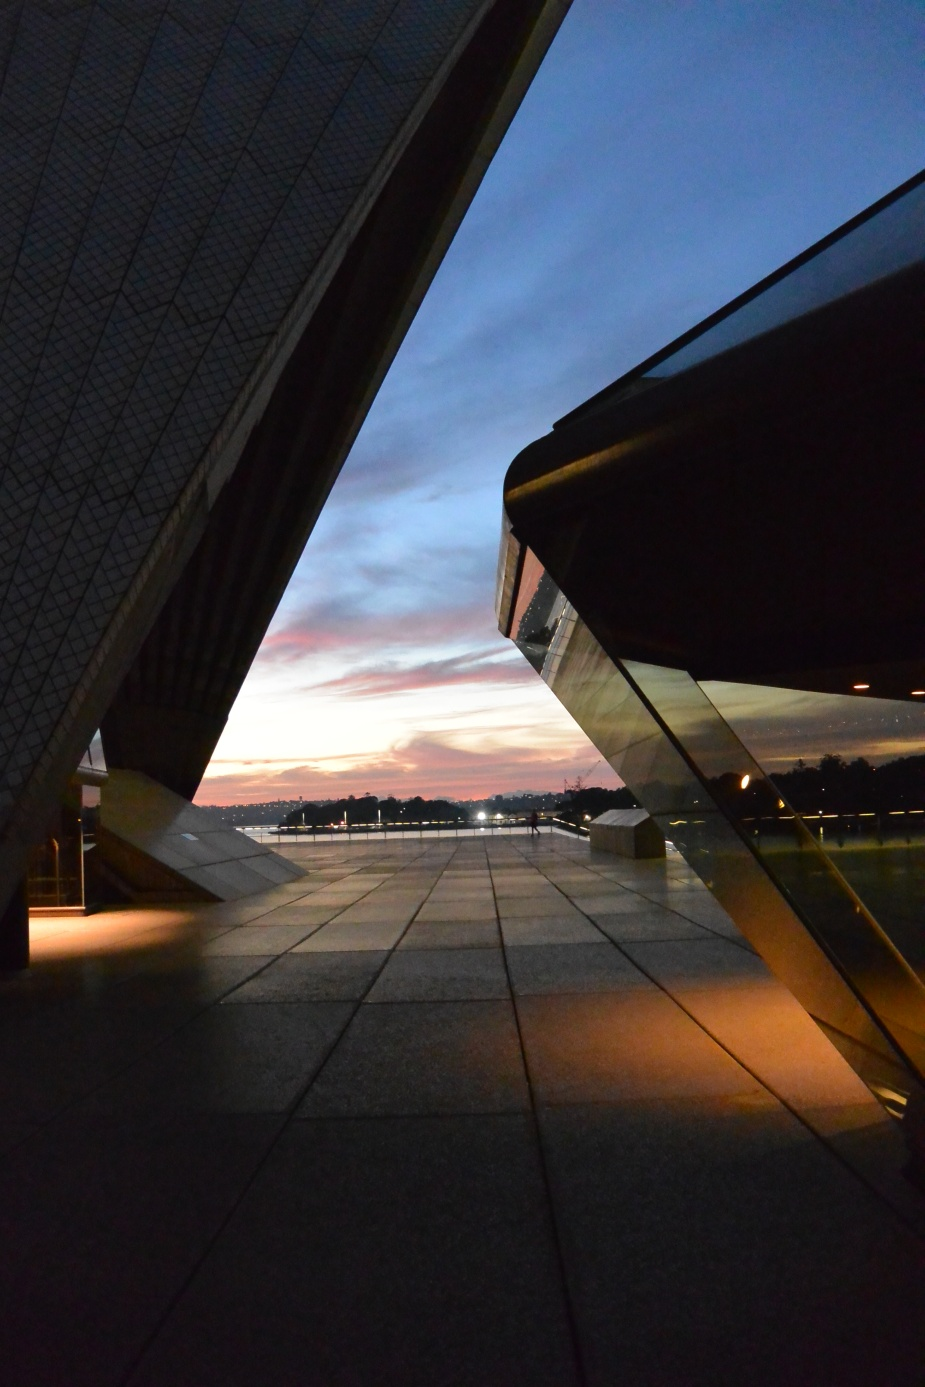 Sunrise at Sydney Opera House